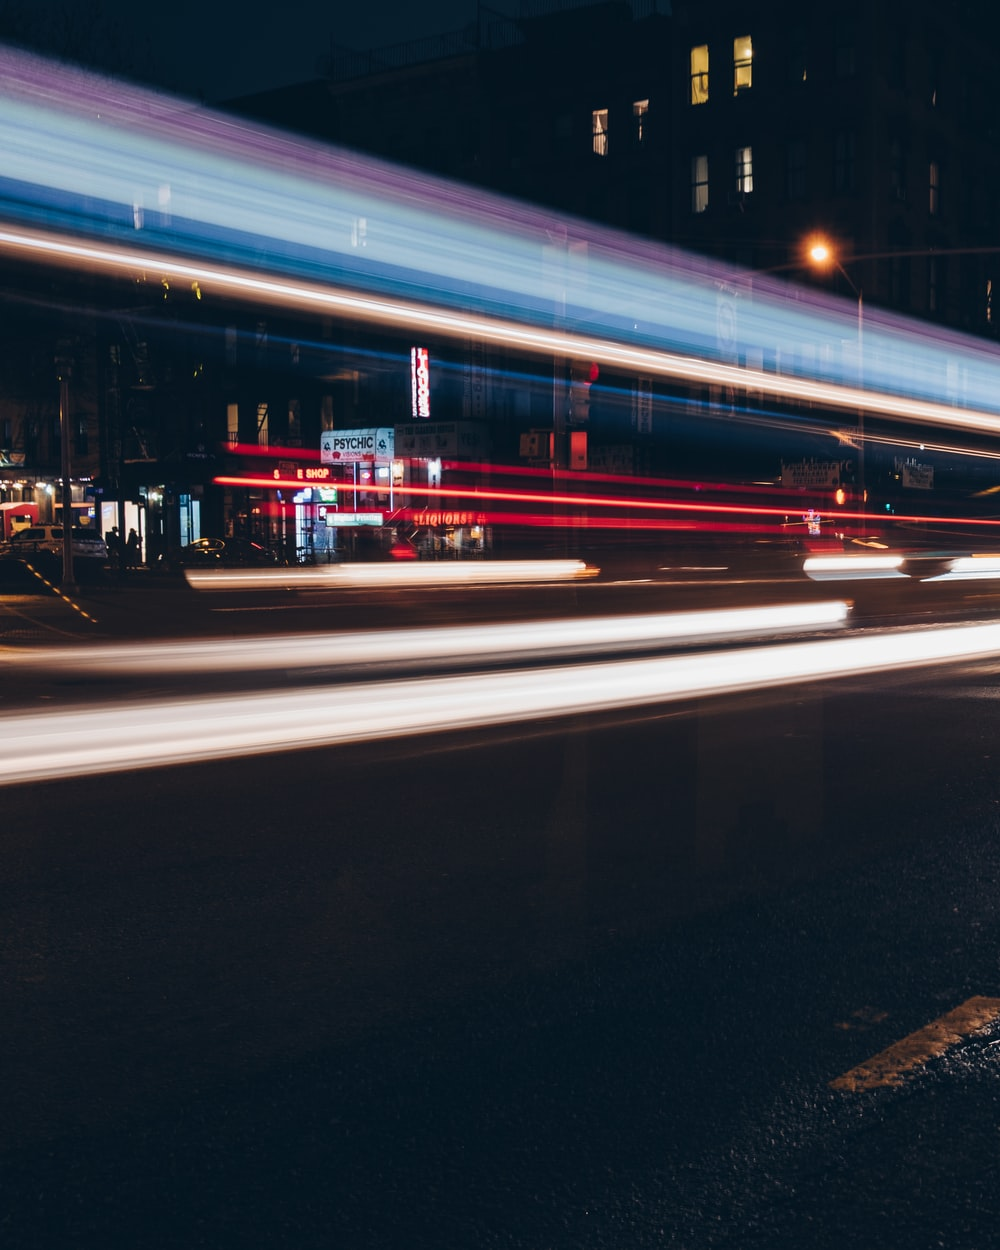 time-lapse photography of vehicle near buildings at night